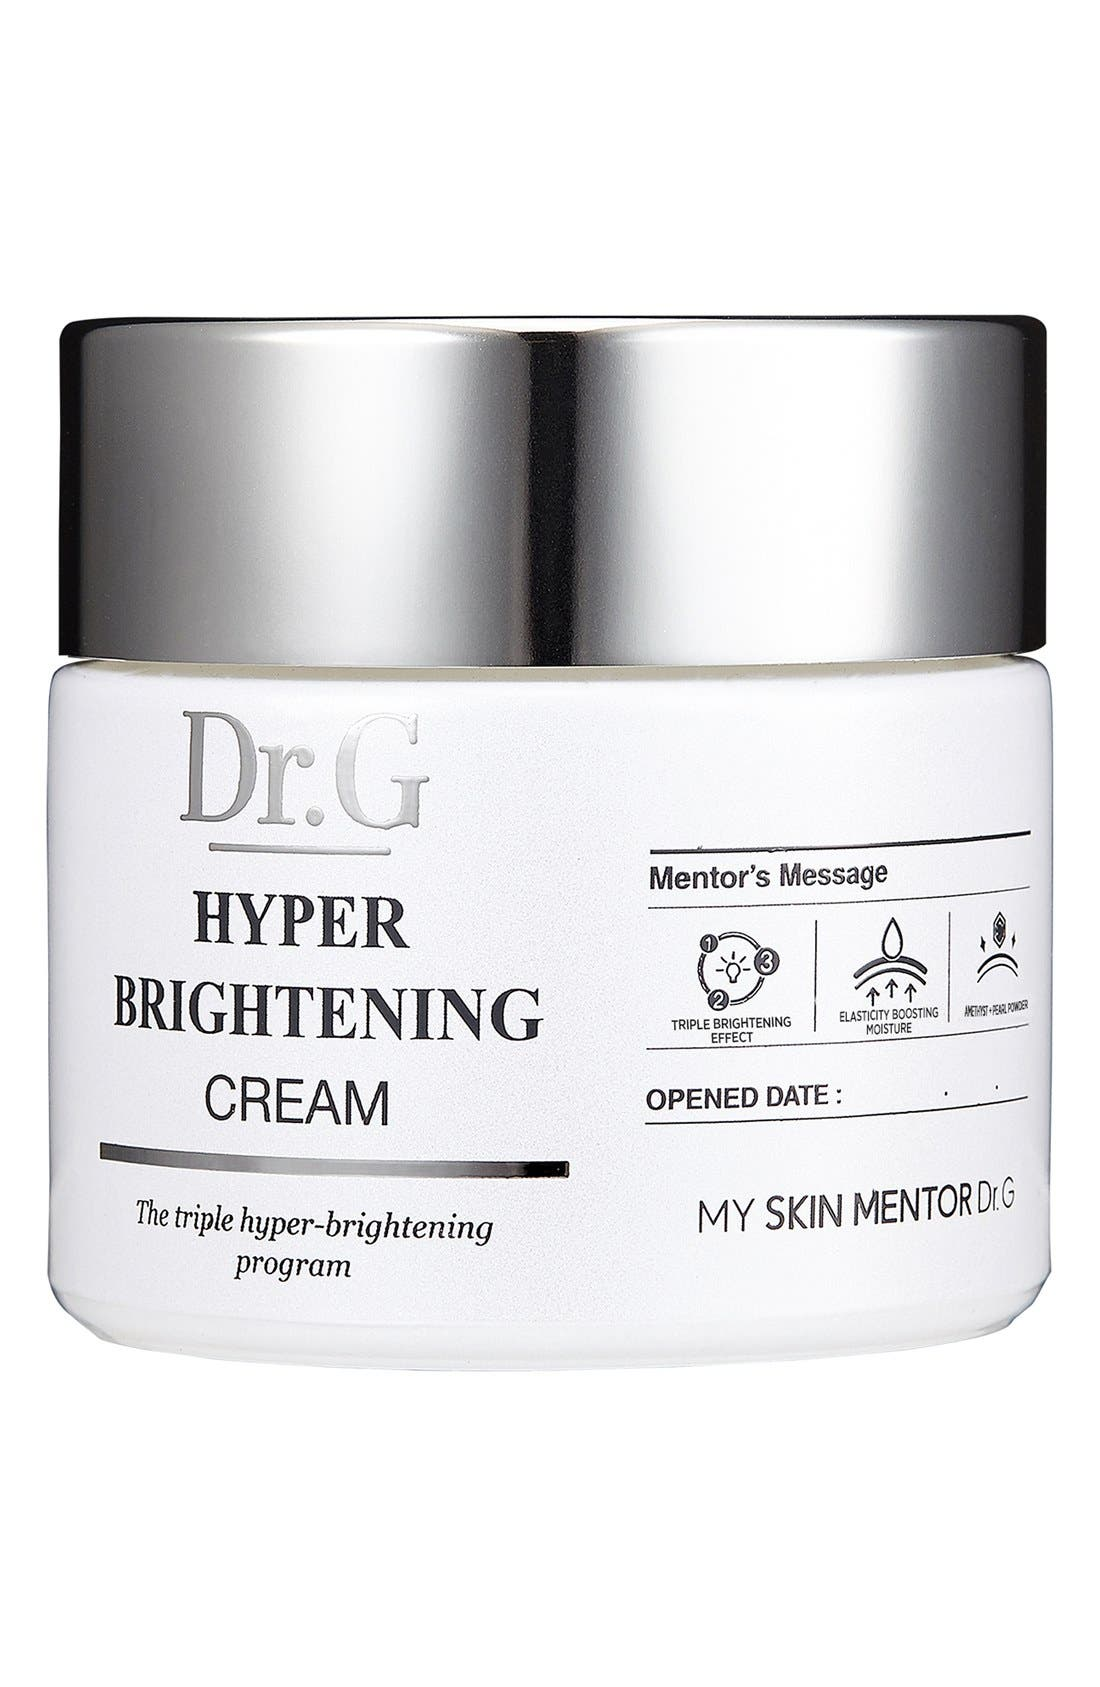 My Skin Mentor Dr. G Beauty Hyper Brightening Cream (Nordstrom Exclusive)